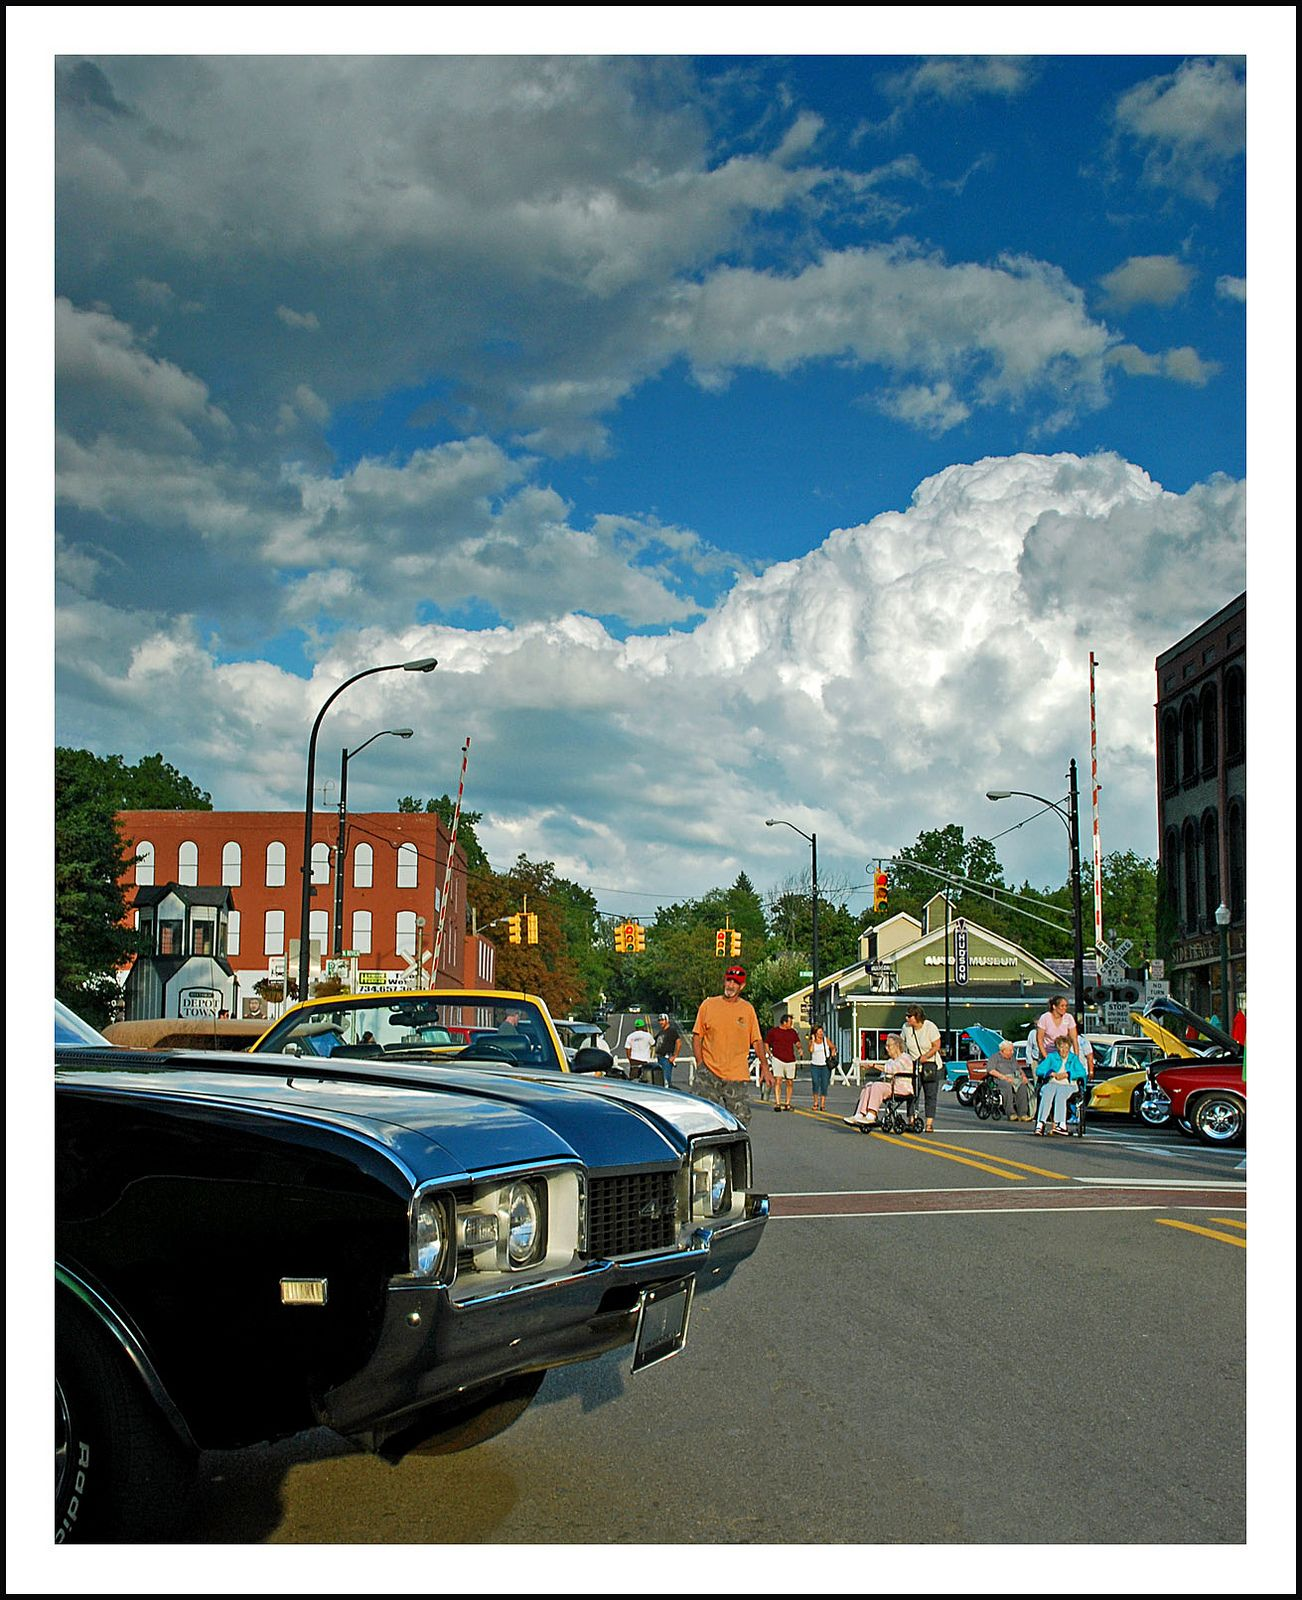 Cottage cheese clouds over Depot Town | by sjb4photos